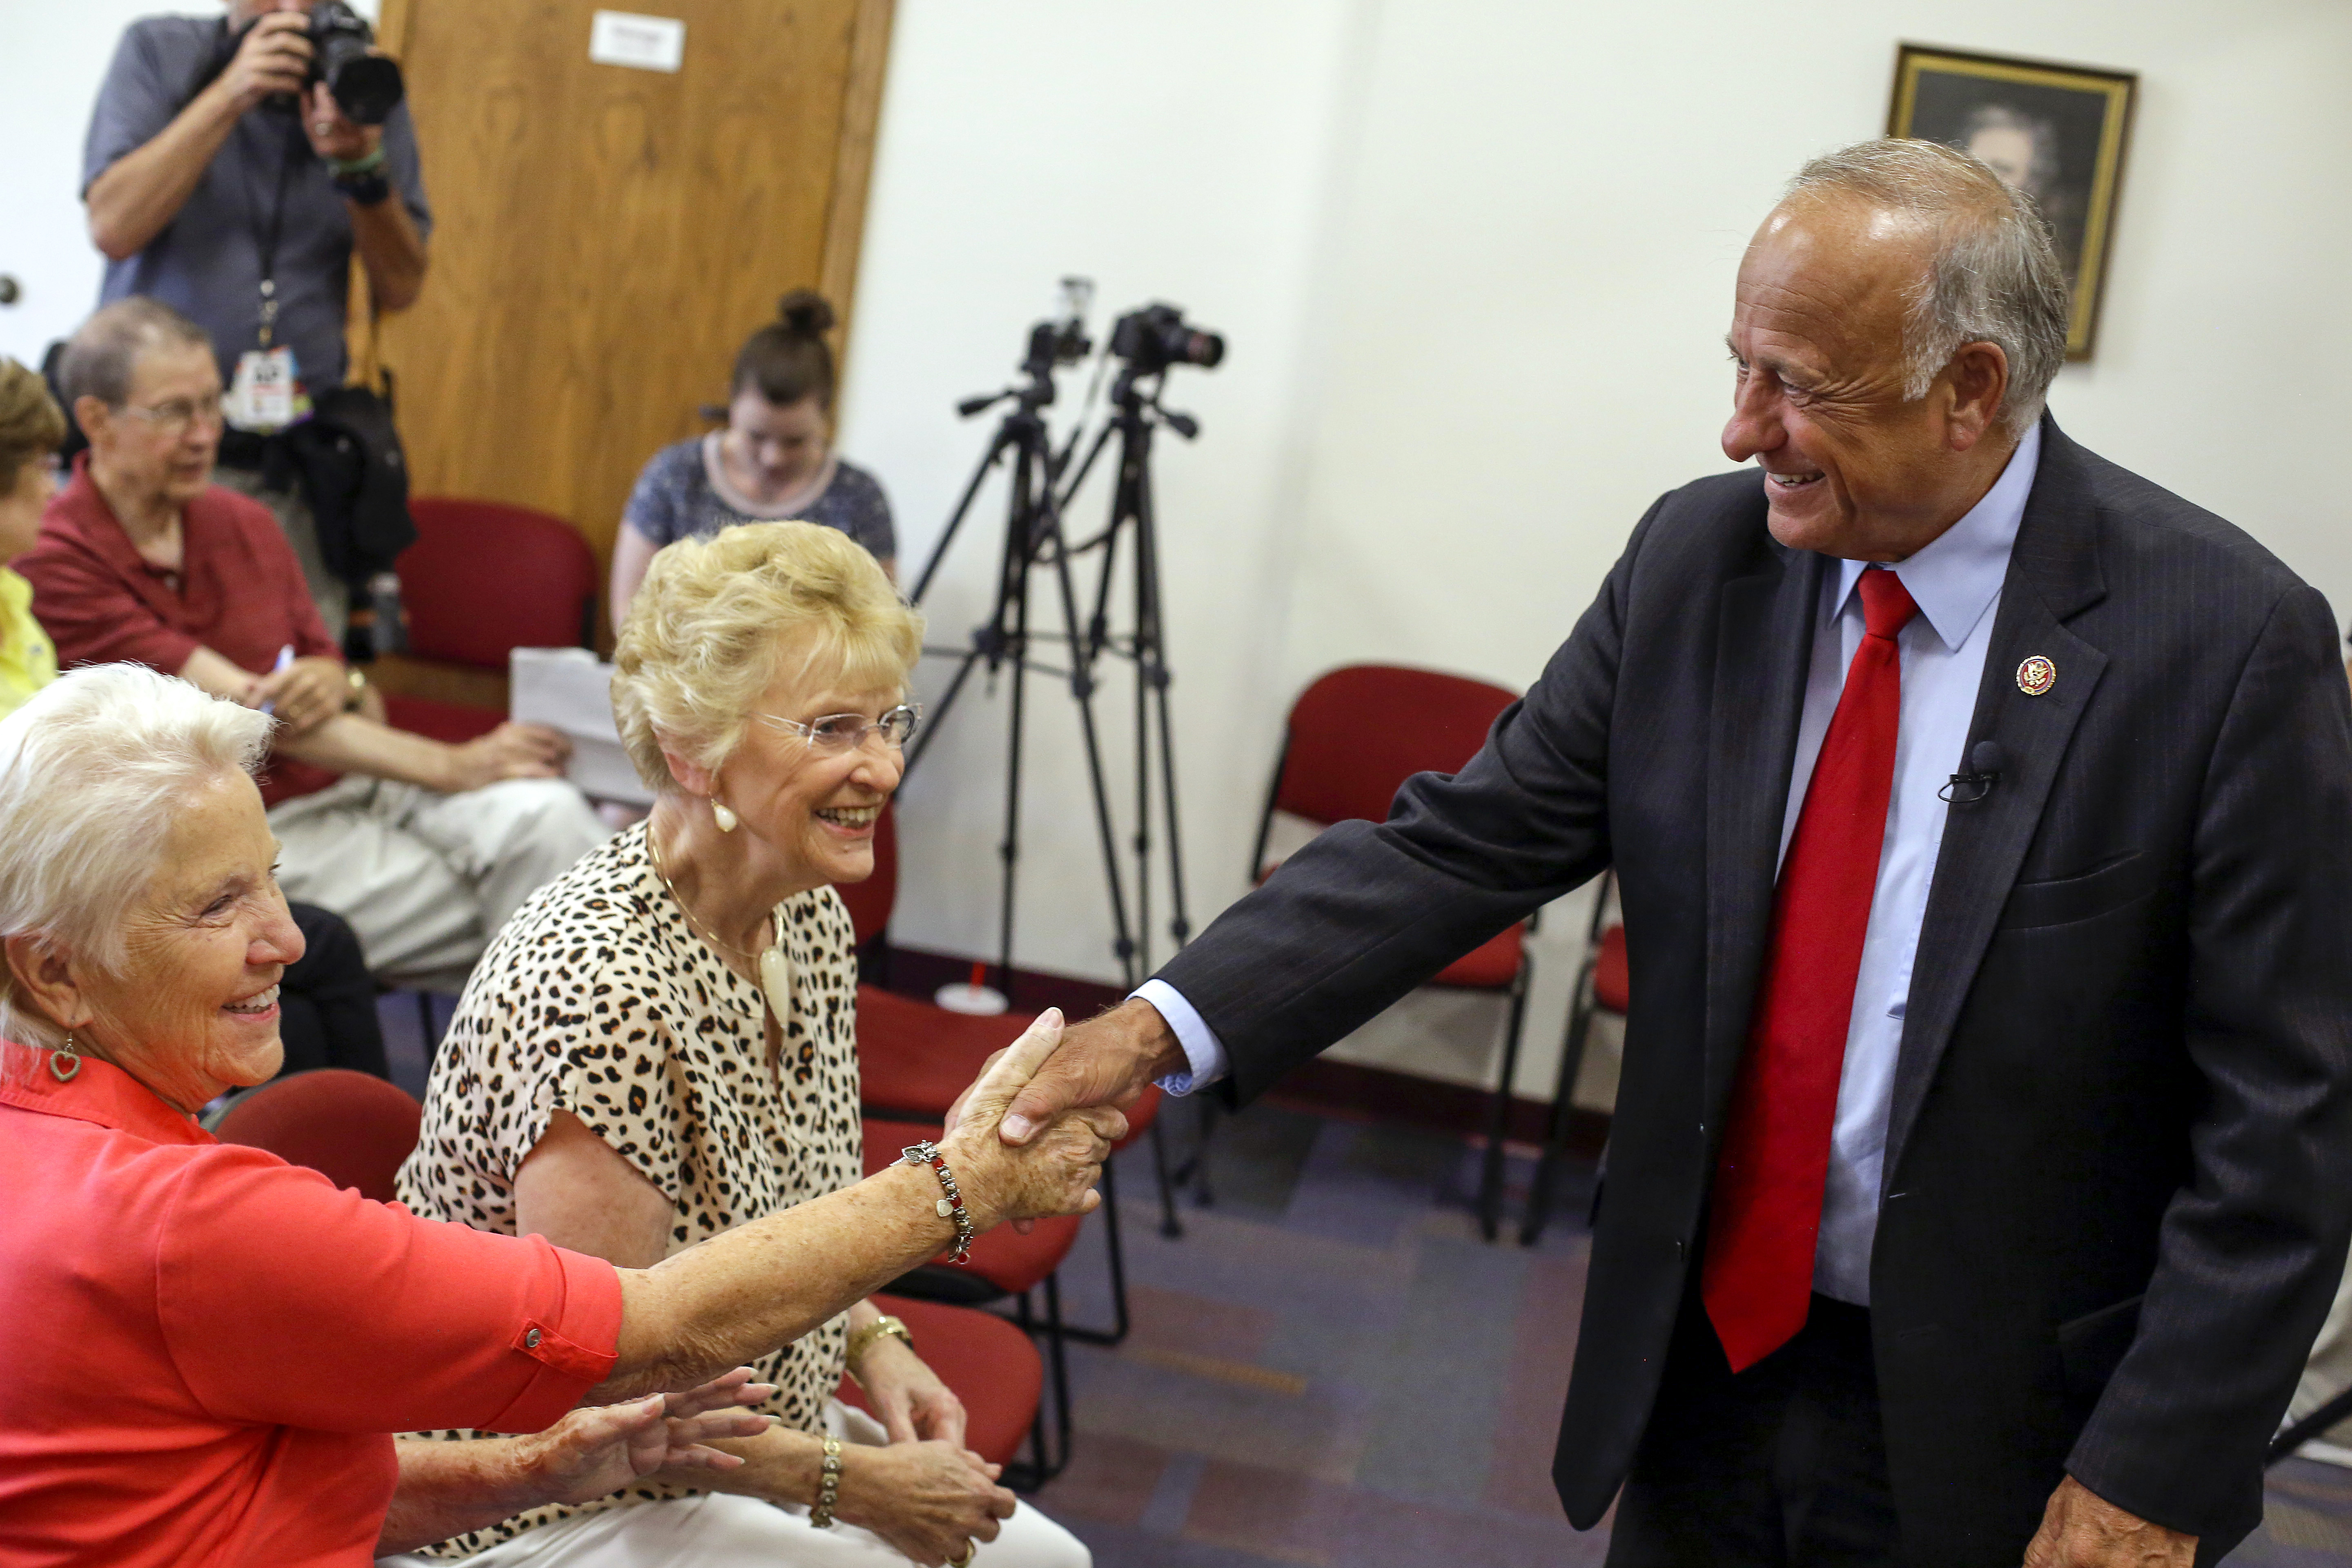 BOONE, IA - AUGUST 13: U.S. Rep. Steve King (R-IA) greets attendees during a town hall meeting at the Ericson Public Library on August 13, 2019 in Boone, Iowa. Steve King, who was stripped of House committee assignments earlier this year after making racist comments spoke about immigration and the U.S. and Mexico border. (Photo by Joshua Lott/Getty Images)